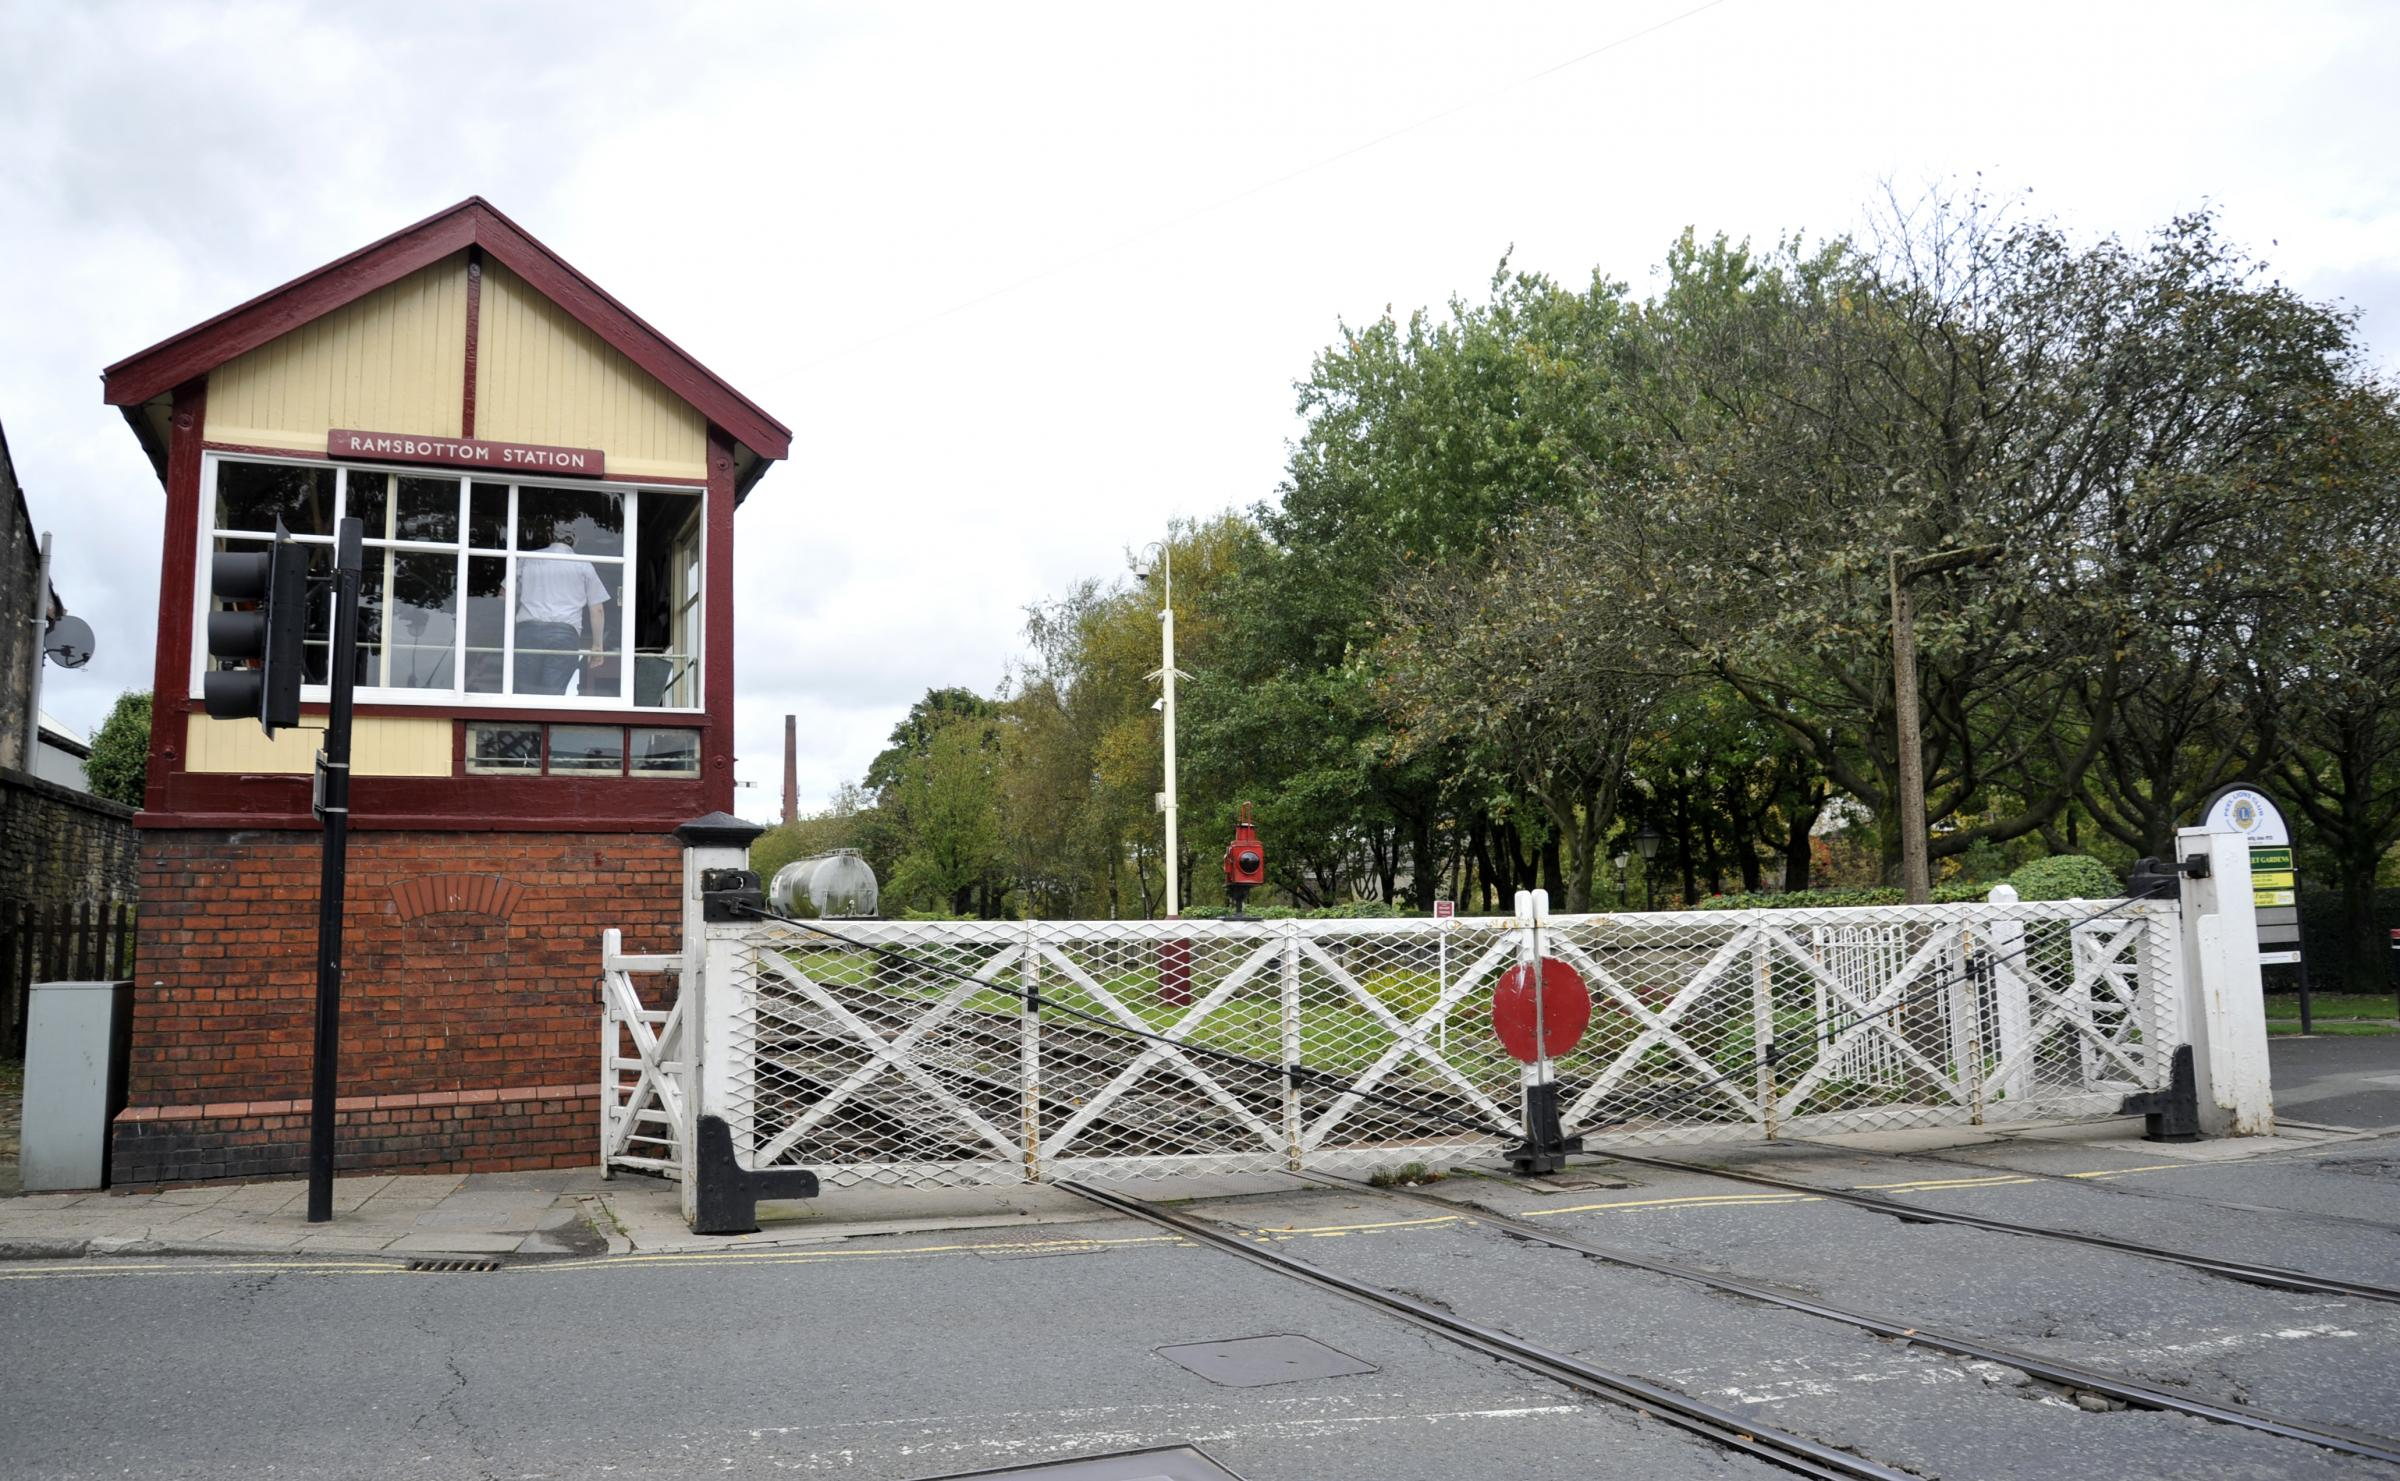 The trolley crashed into a level crossing gate close to Ramsbottom Station